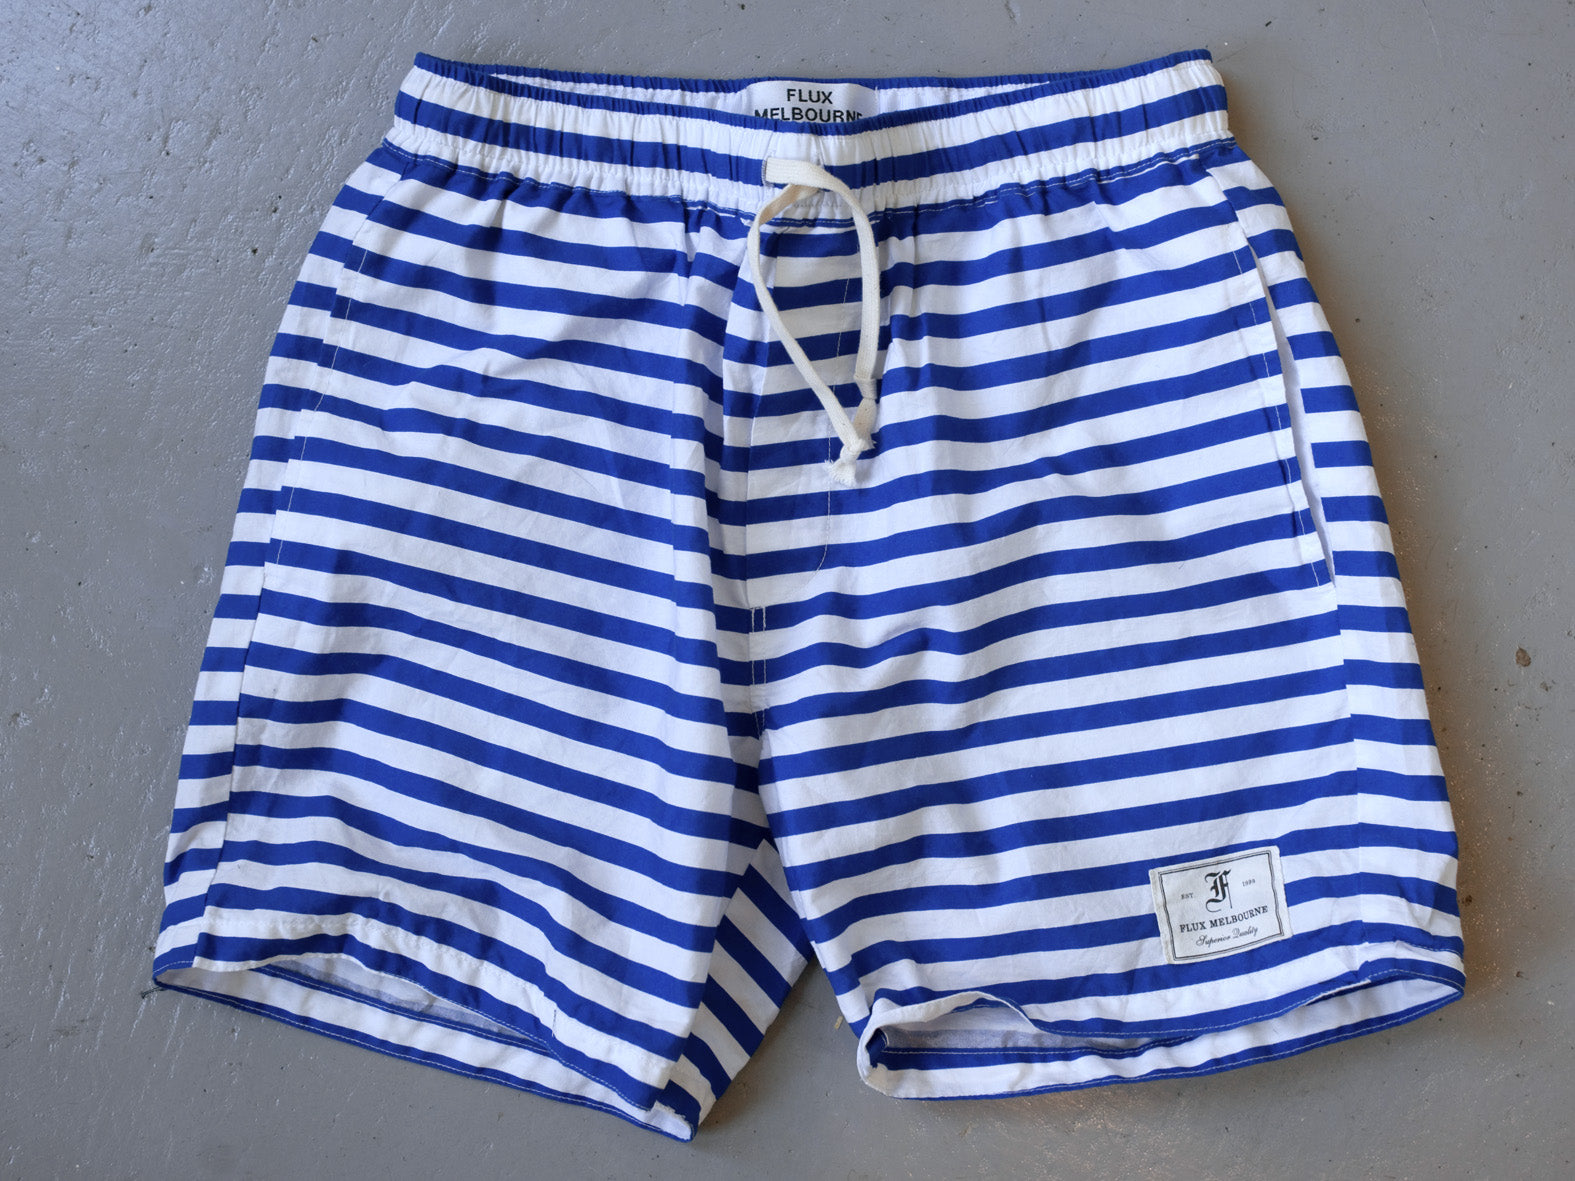 RIVIERA - Royal Blue striped shorts.